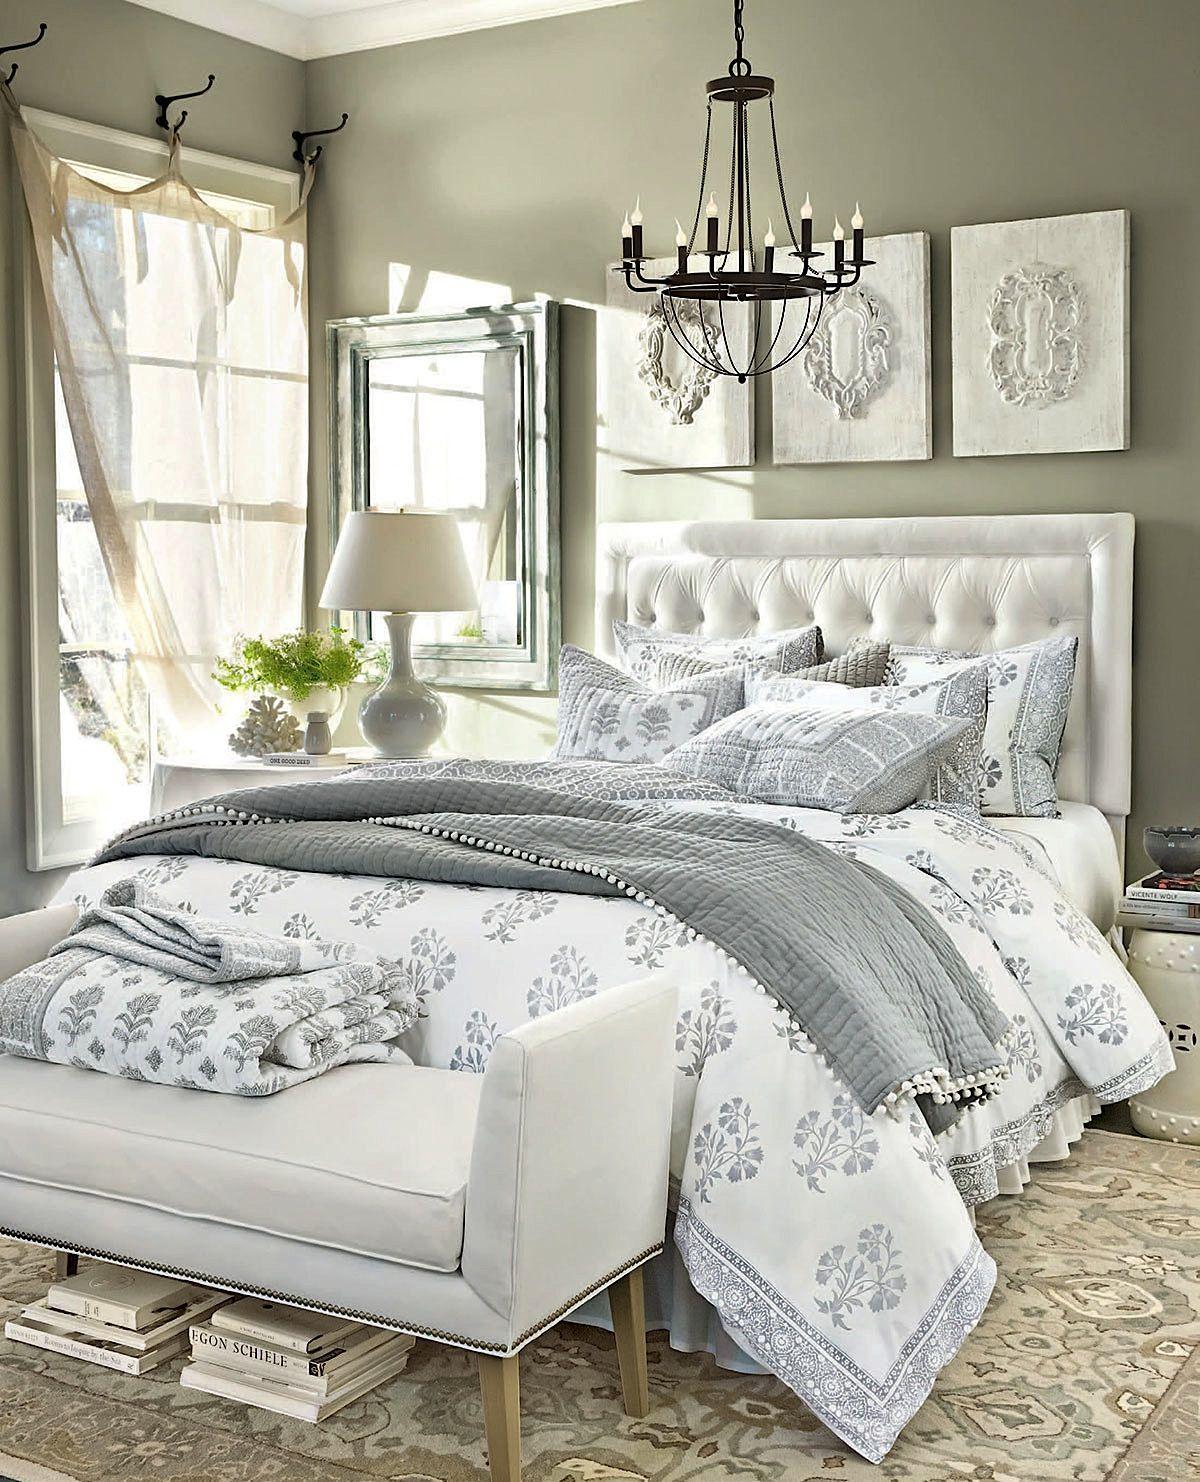 Bedroom Decorating Ideas   Photo Gallery by Ballard Designs. Bedrooms   White bedroom decor  Bedrooms and Gray